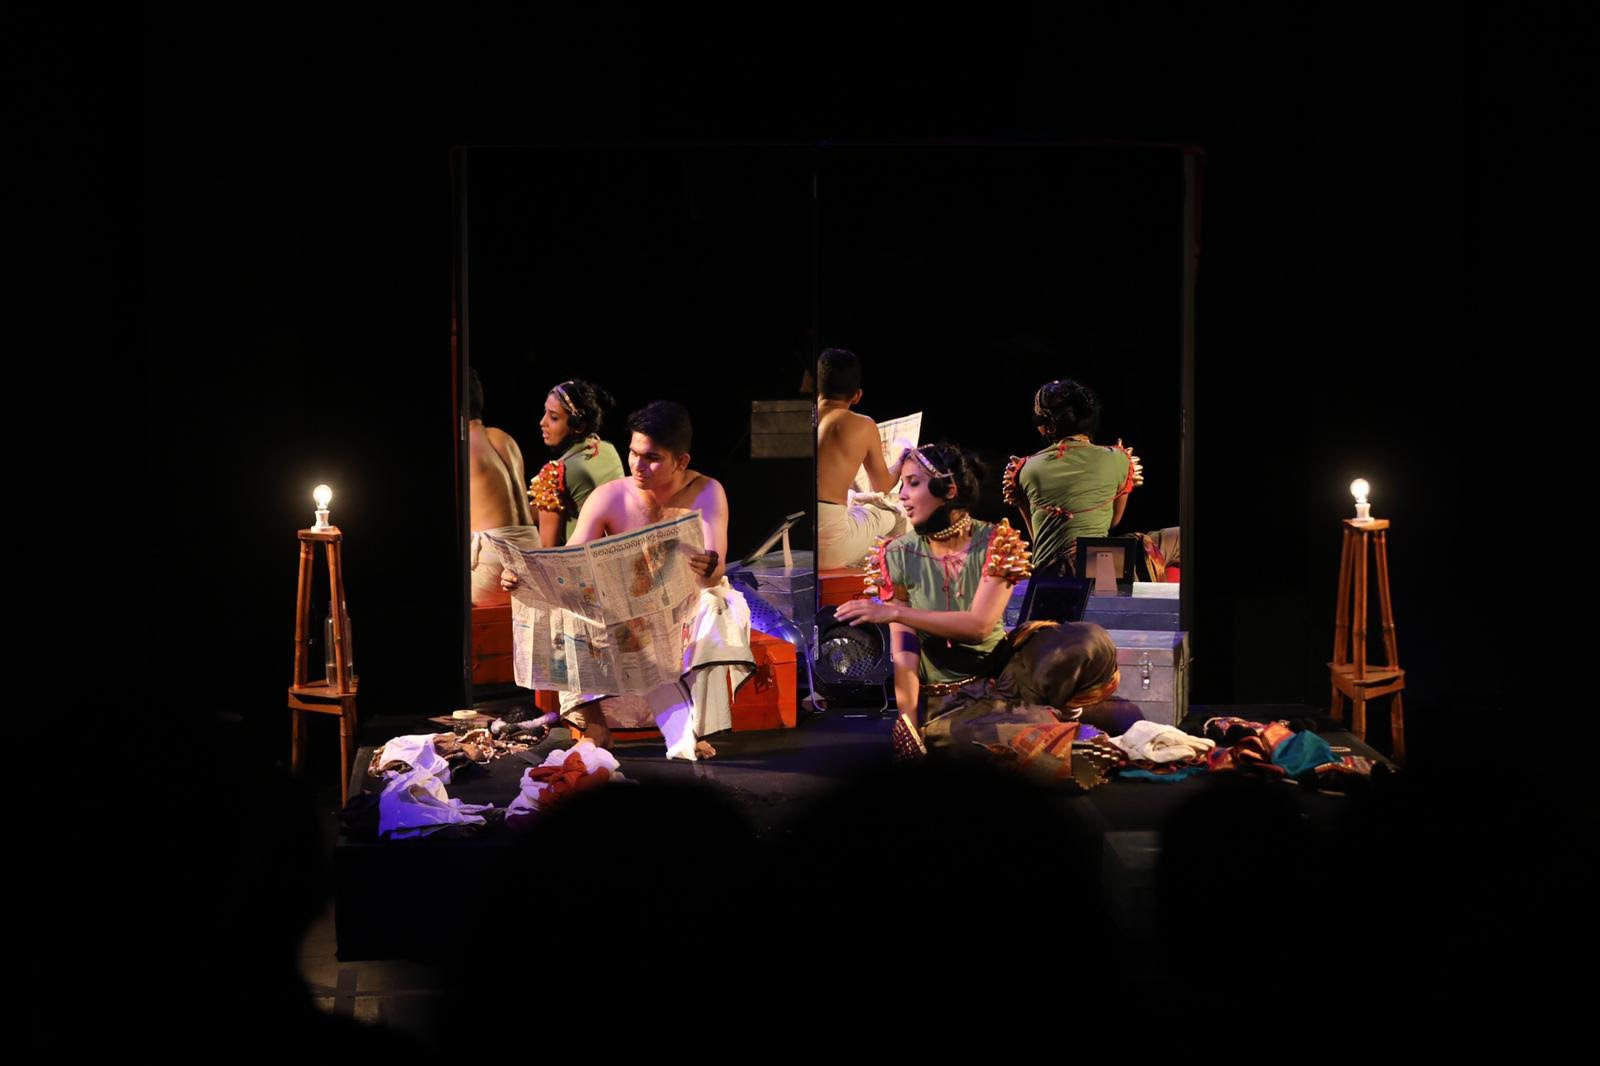 Akshayambara explores the reversal of roles in the male-dominated theatre practice, yakshagana. Photo courtesy: Esplanade